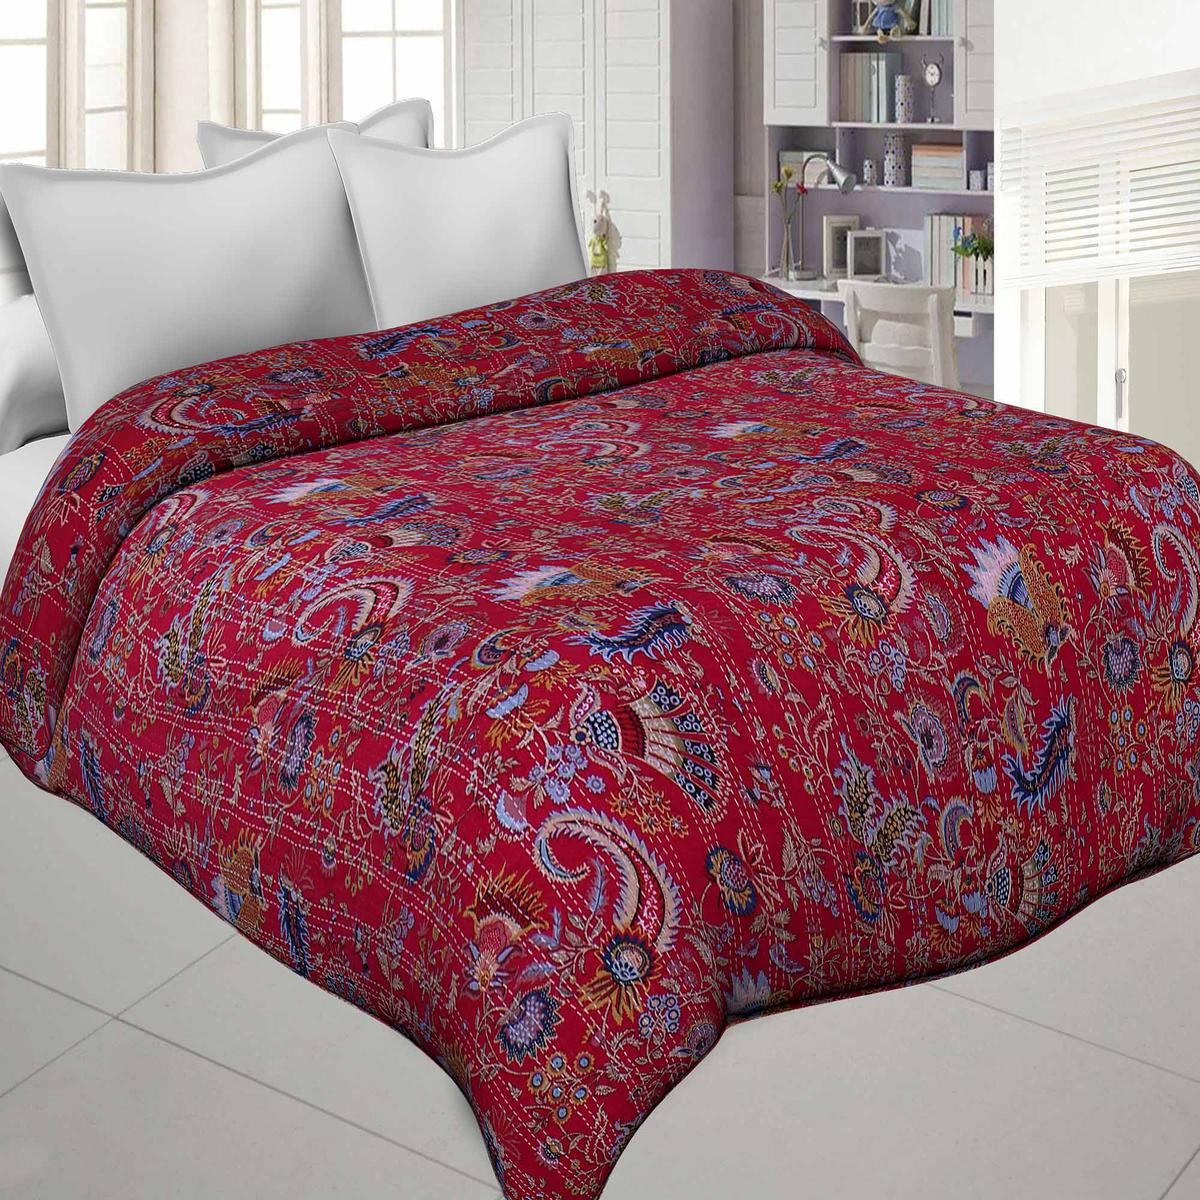 Graceful Red Colored Katha Work Double Size Comforters